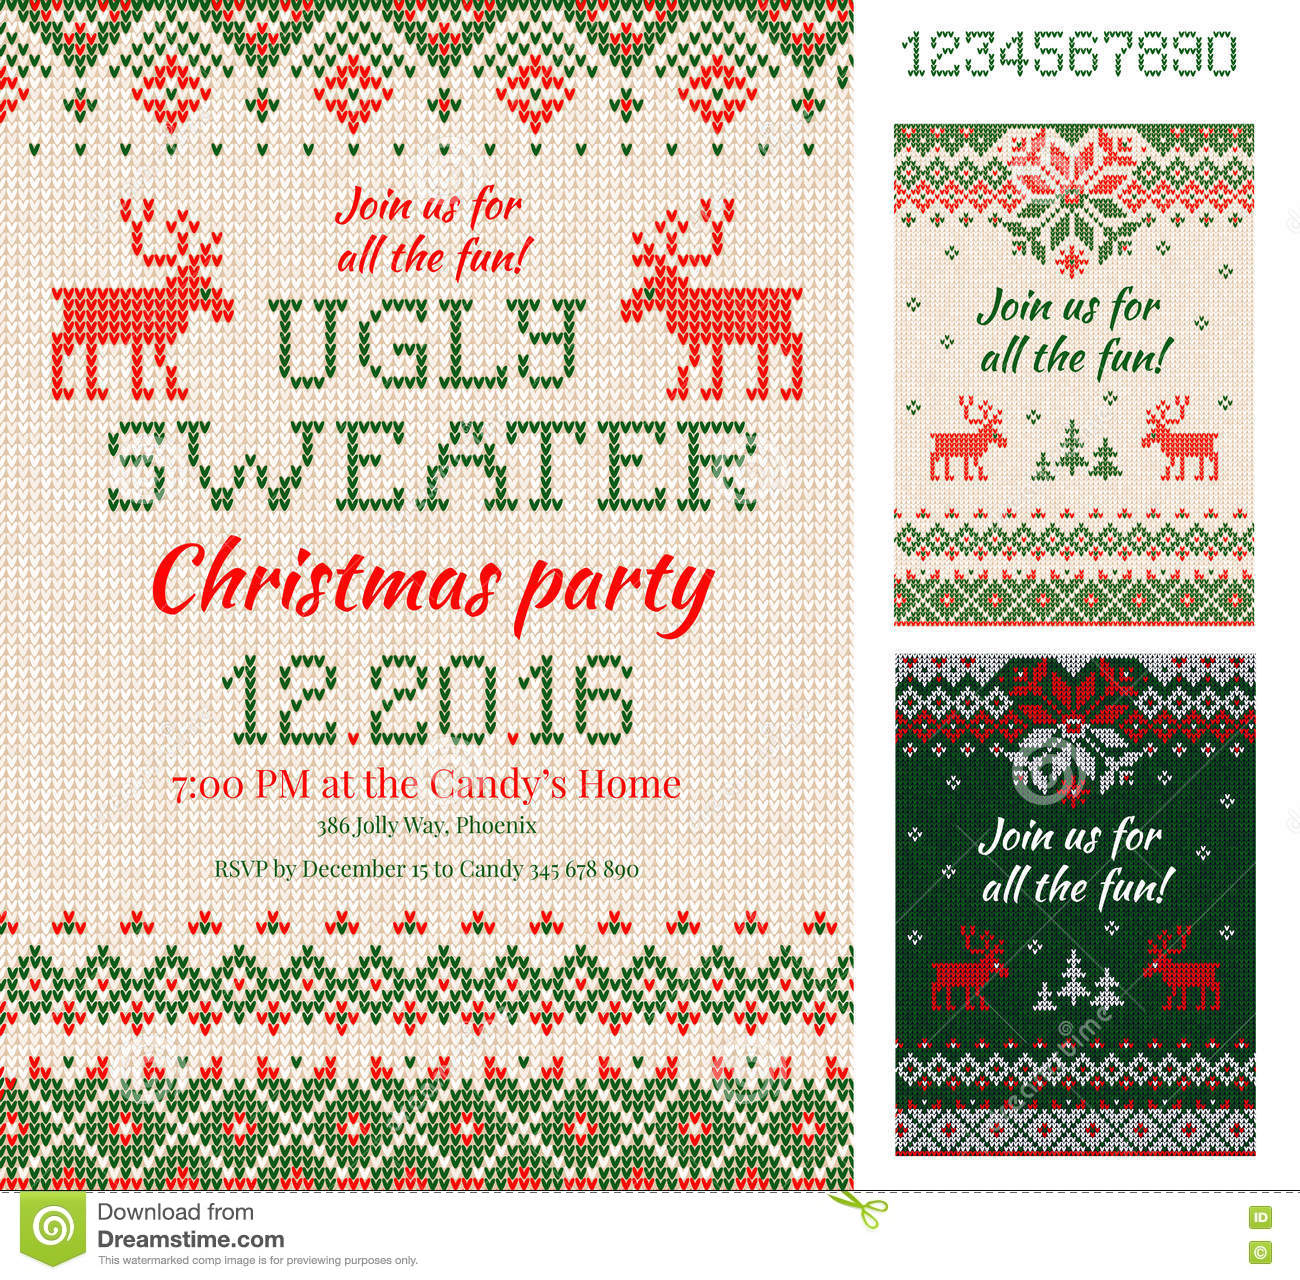 Ugly sweater christmas party cards knitted pattern scandinavia download ugly sweater christmas party cards knitted pattern scandinavia stock illustration illustration of m4hsunfo